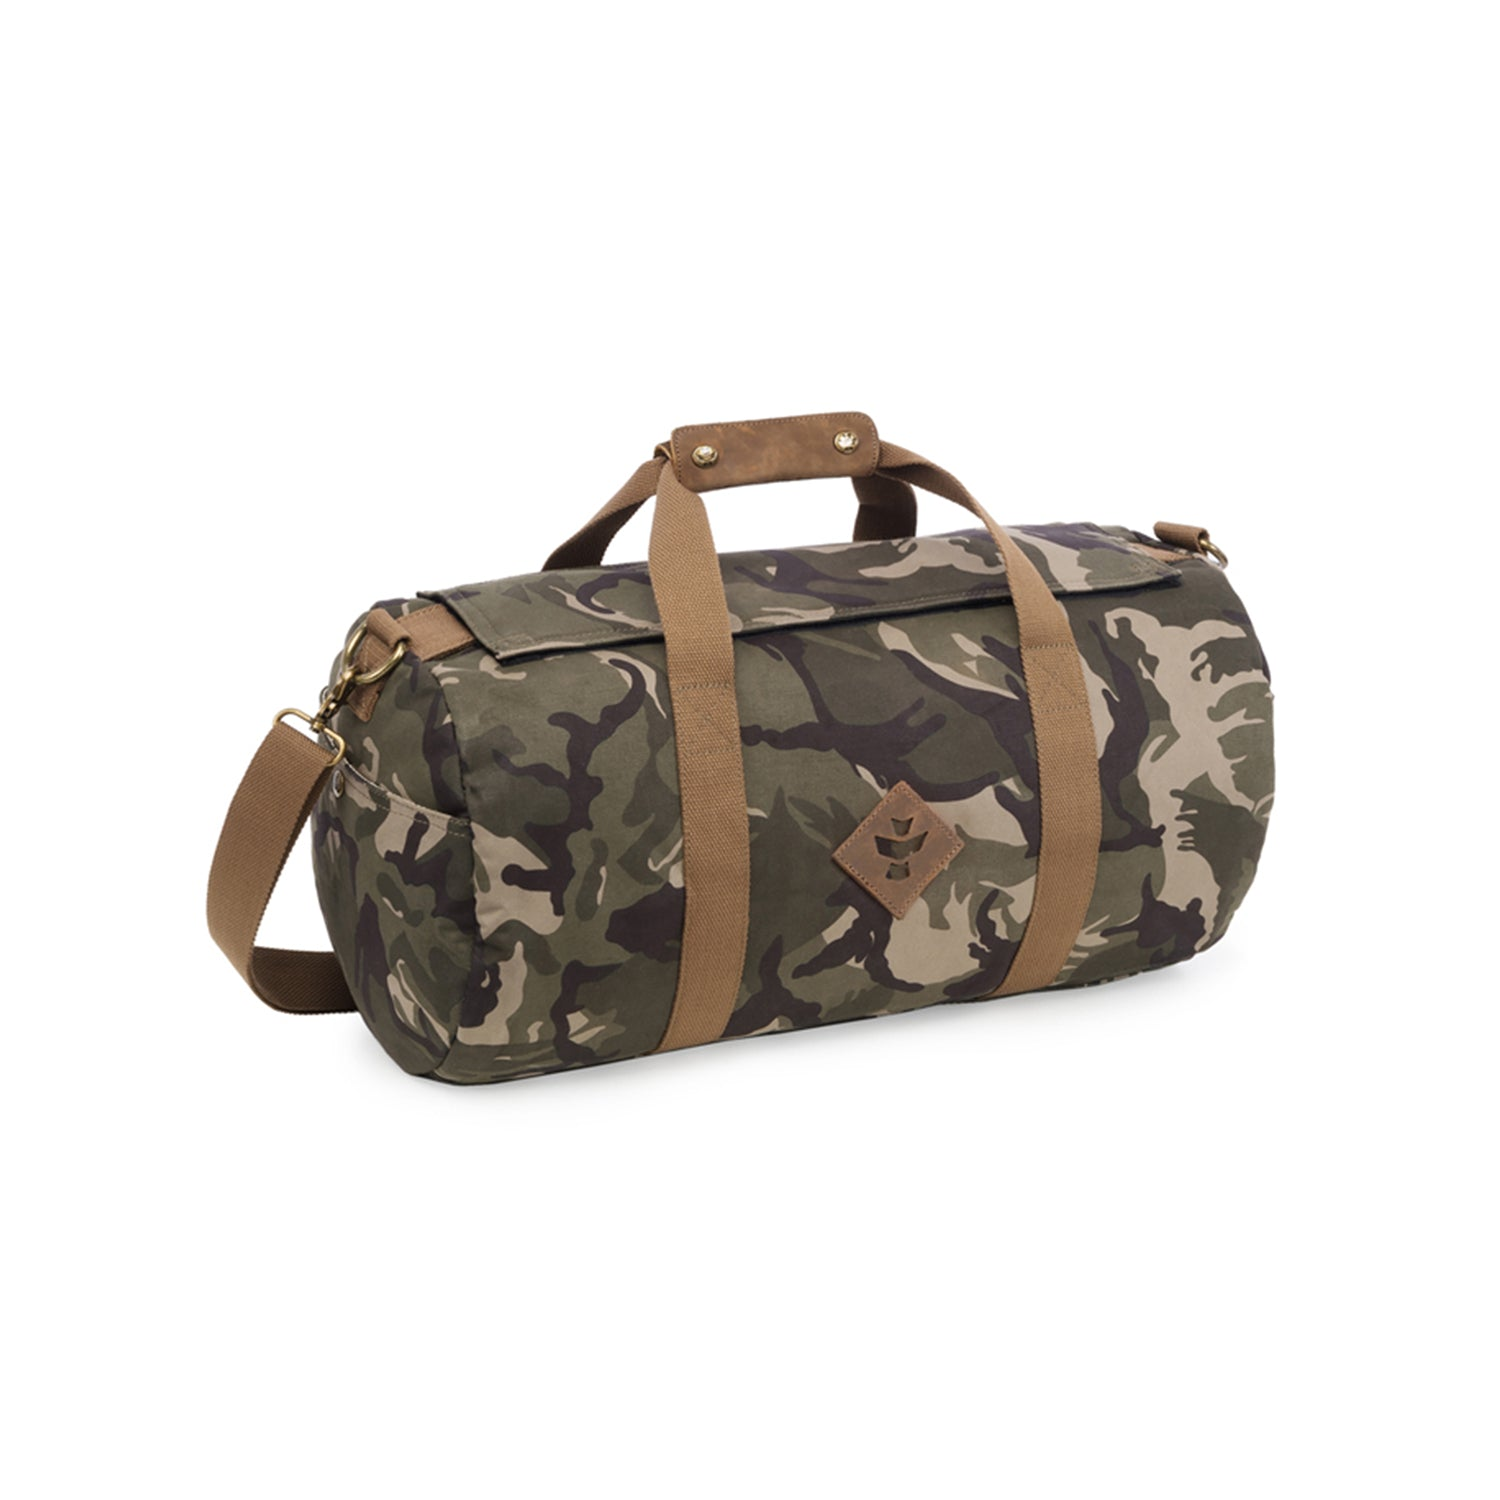 Camo Brown Canvas Smell Proof Water Resistant Small Duffle Bag